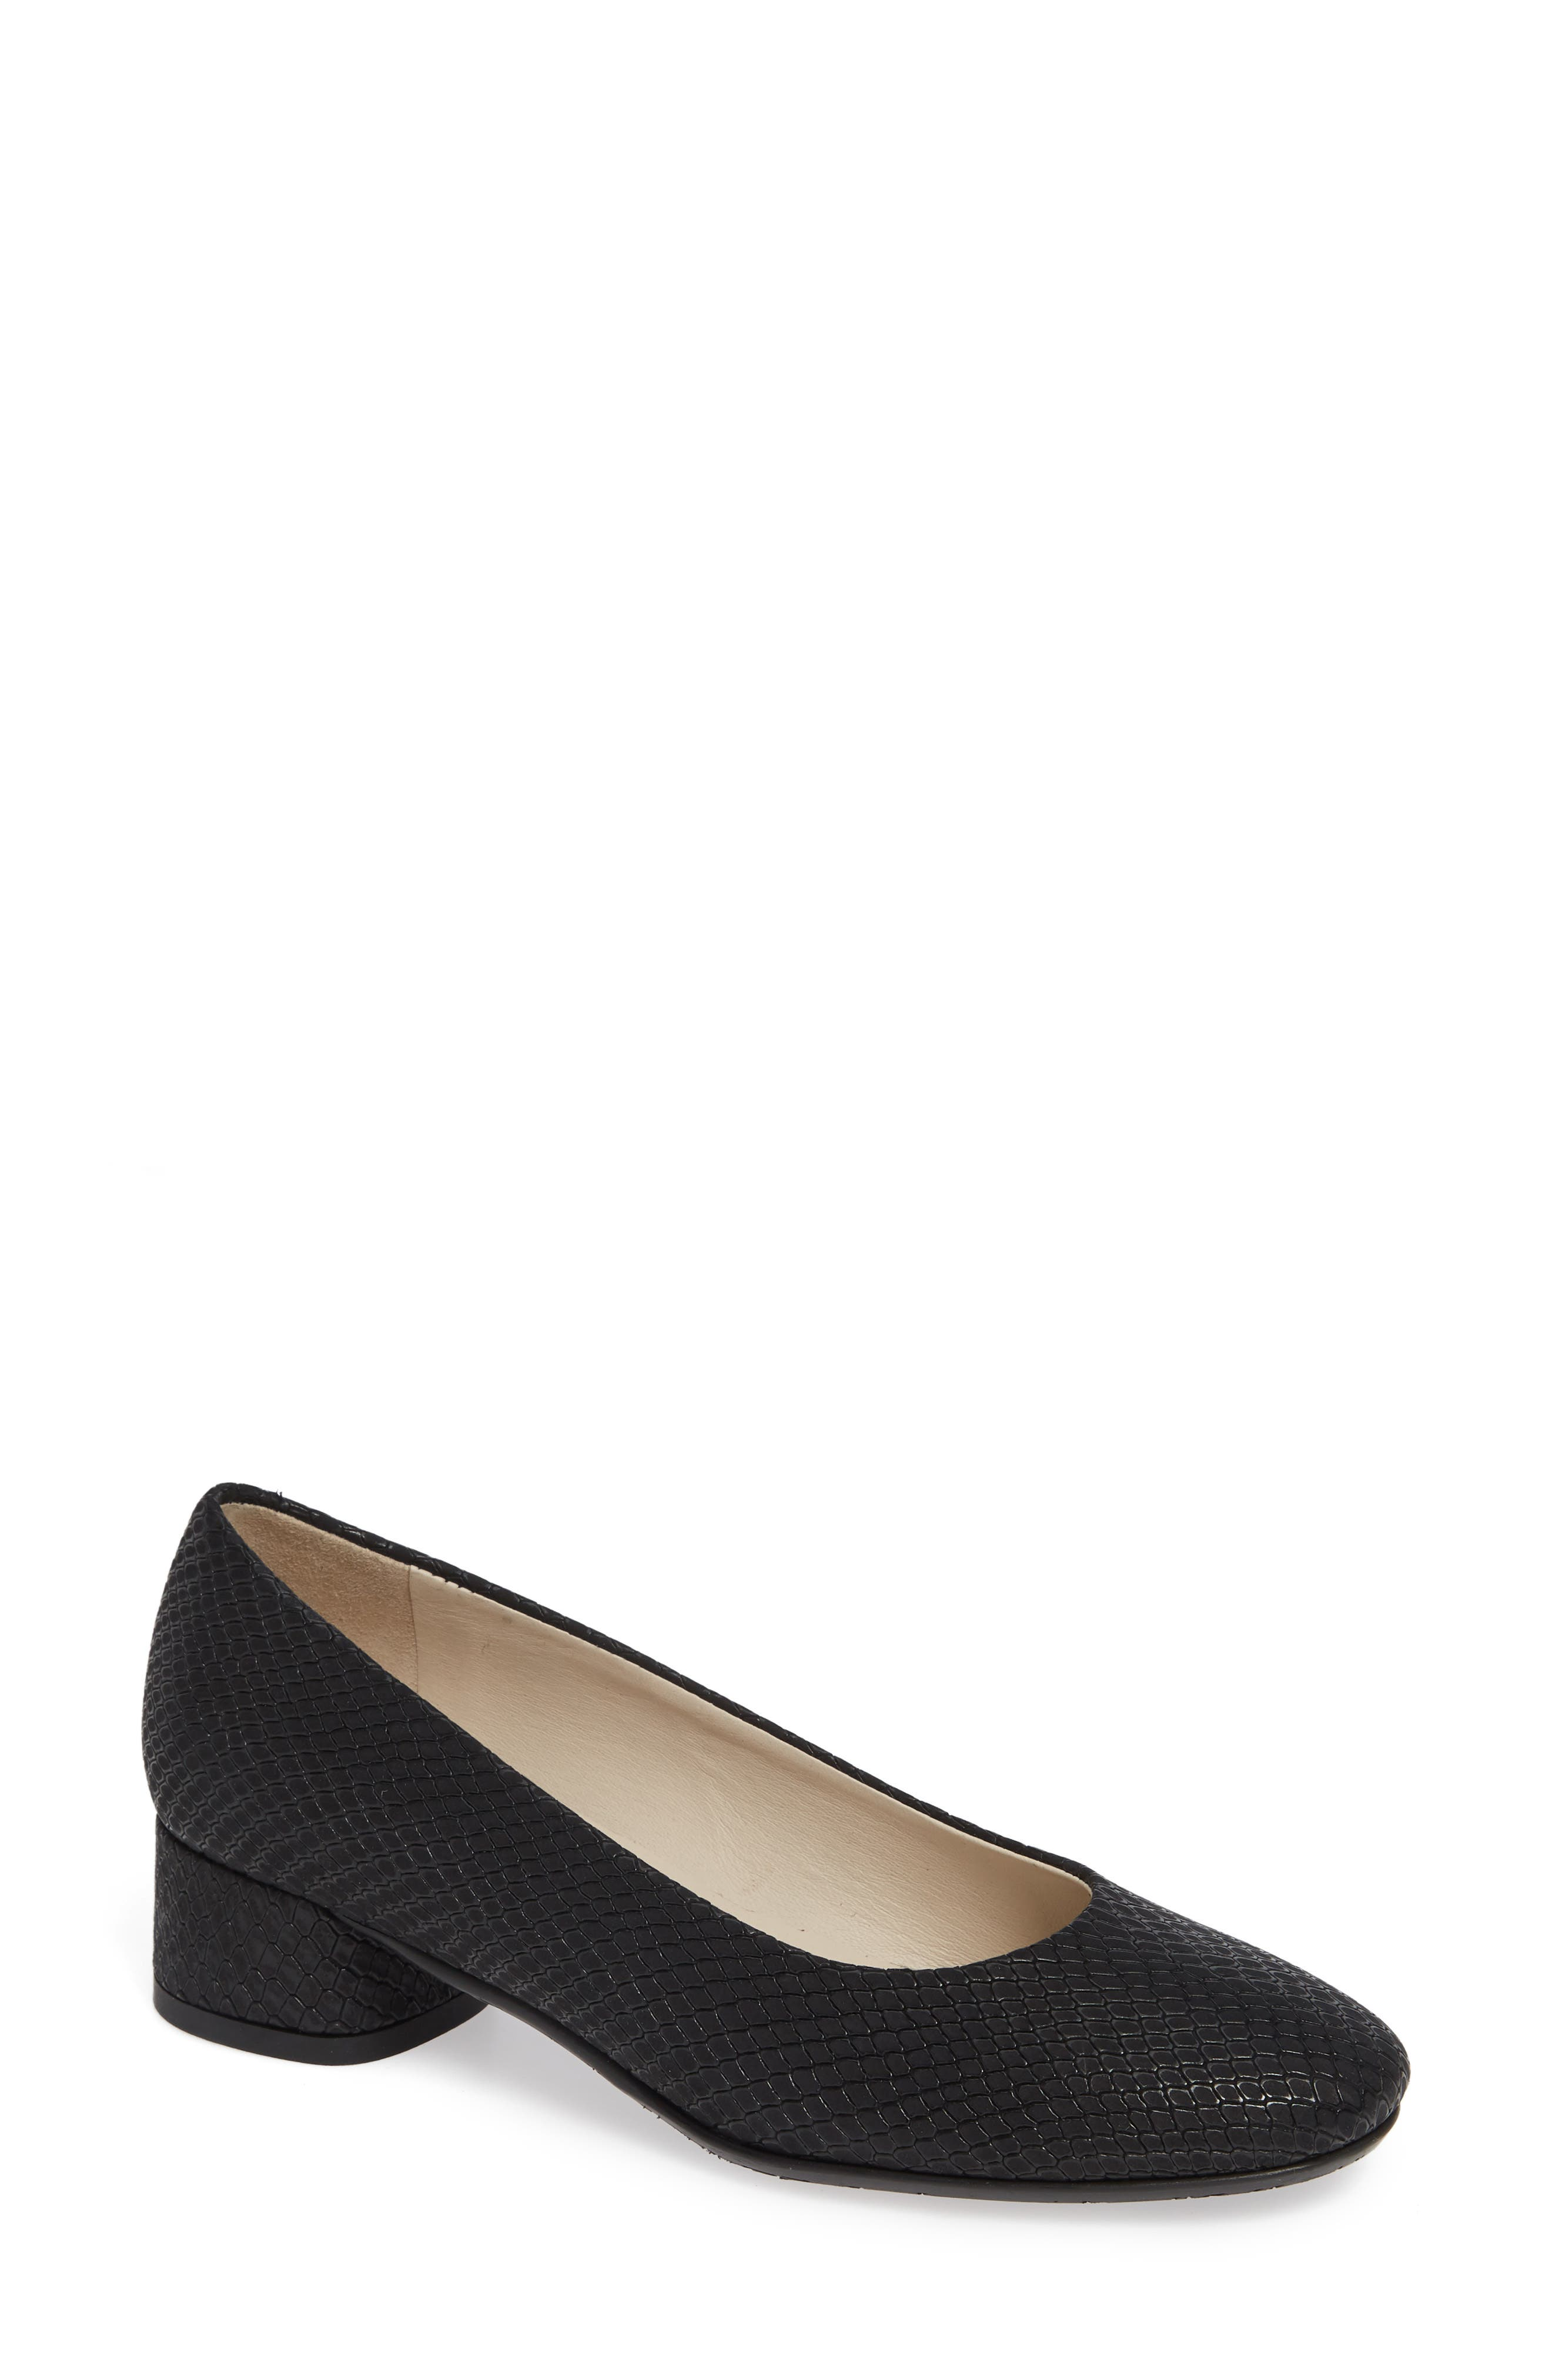 AMALFI BY RANGONI Record Pump, Main, color, BLACK OXIDE SUEDE